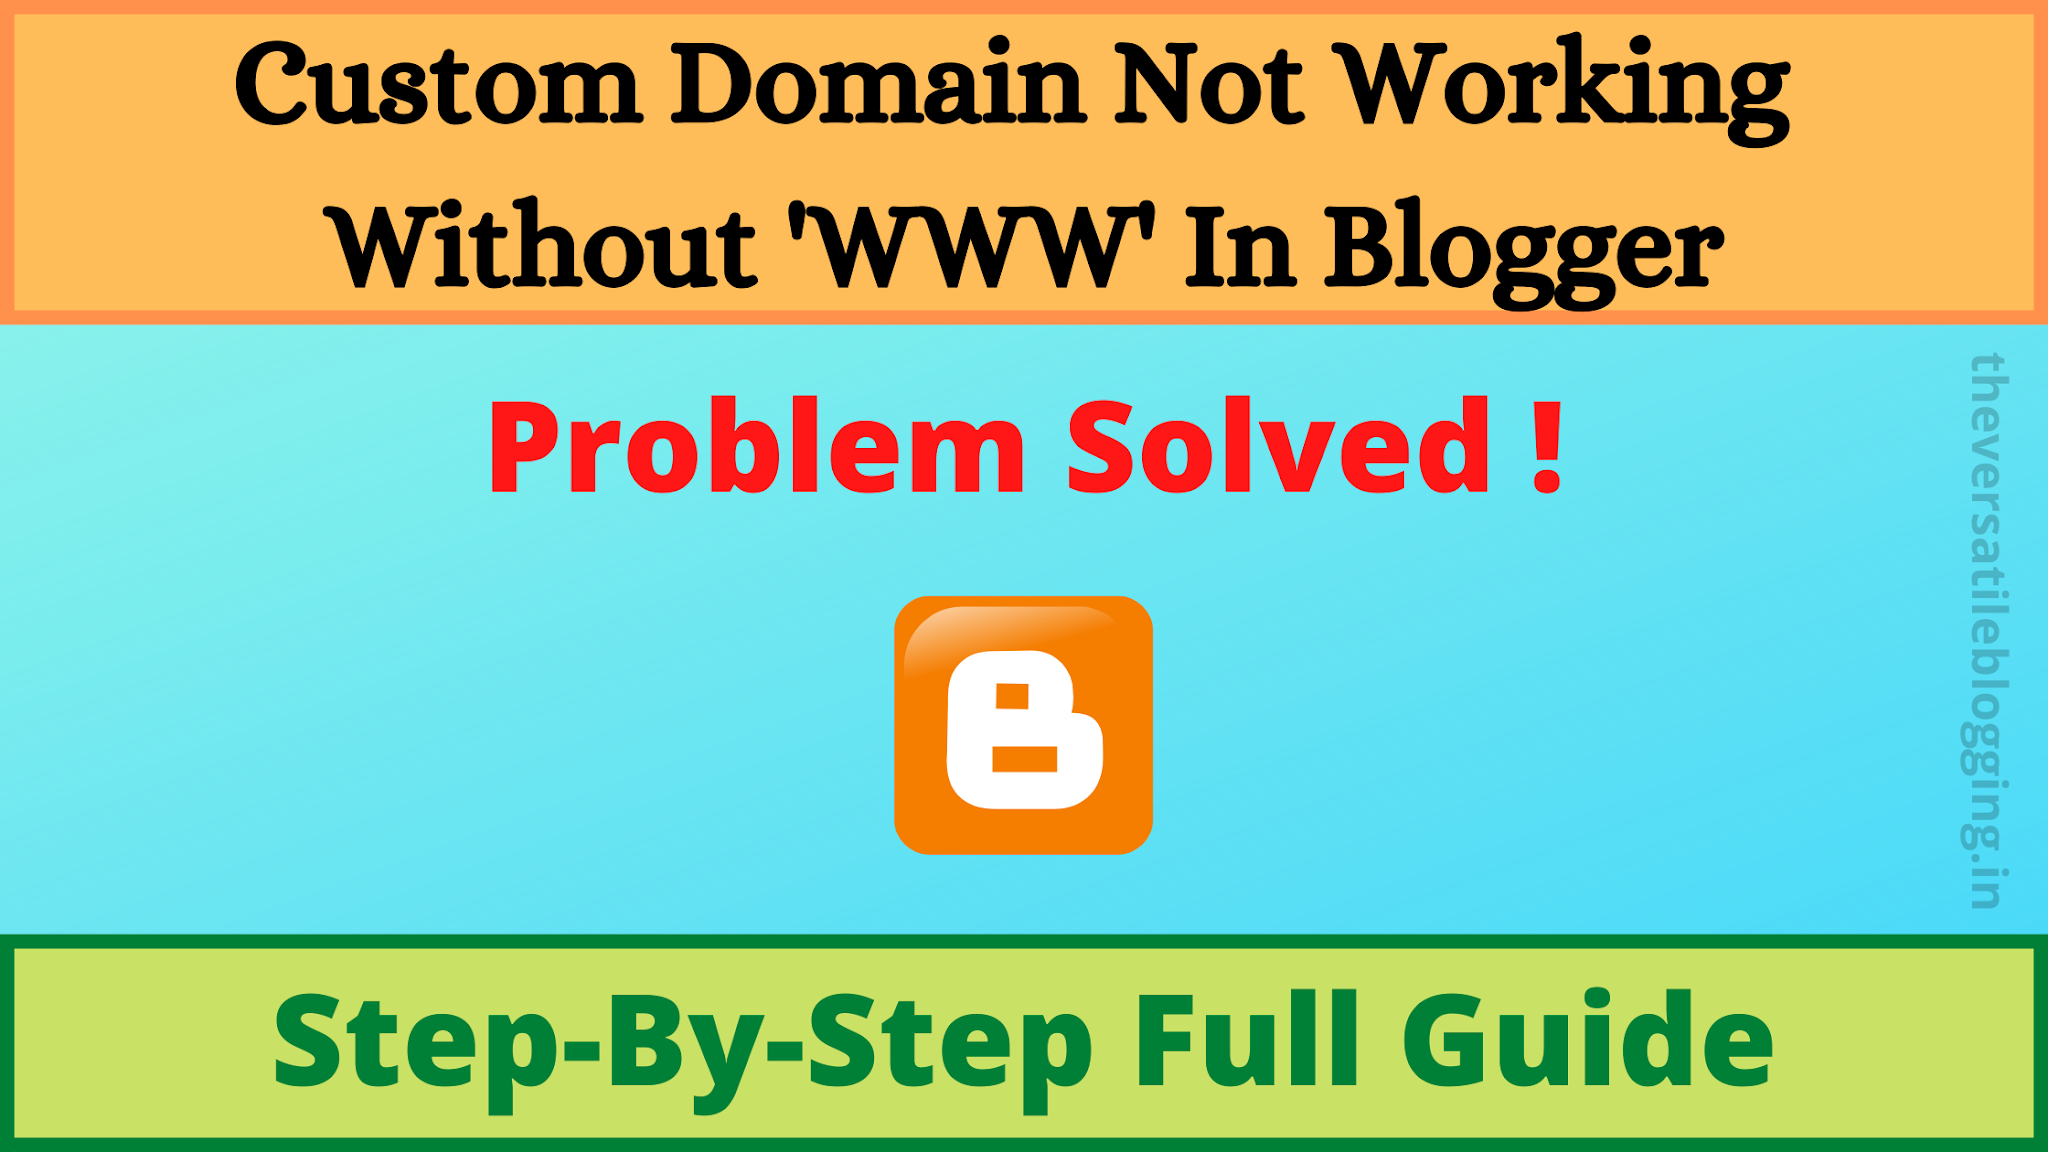 [Latest 2020] Fix Custom Domain Not Working Without 'www' In Blogger